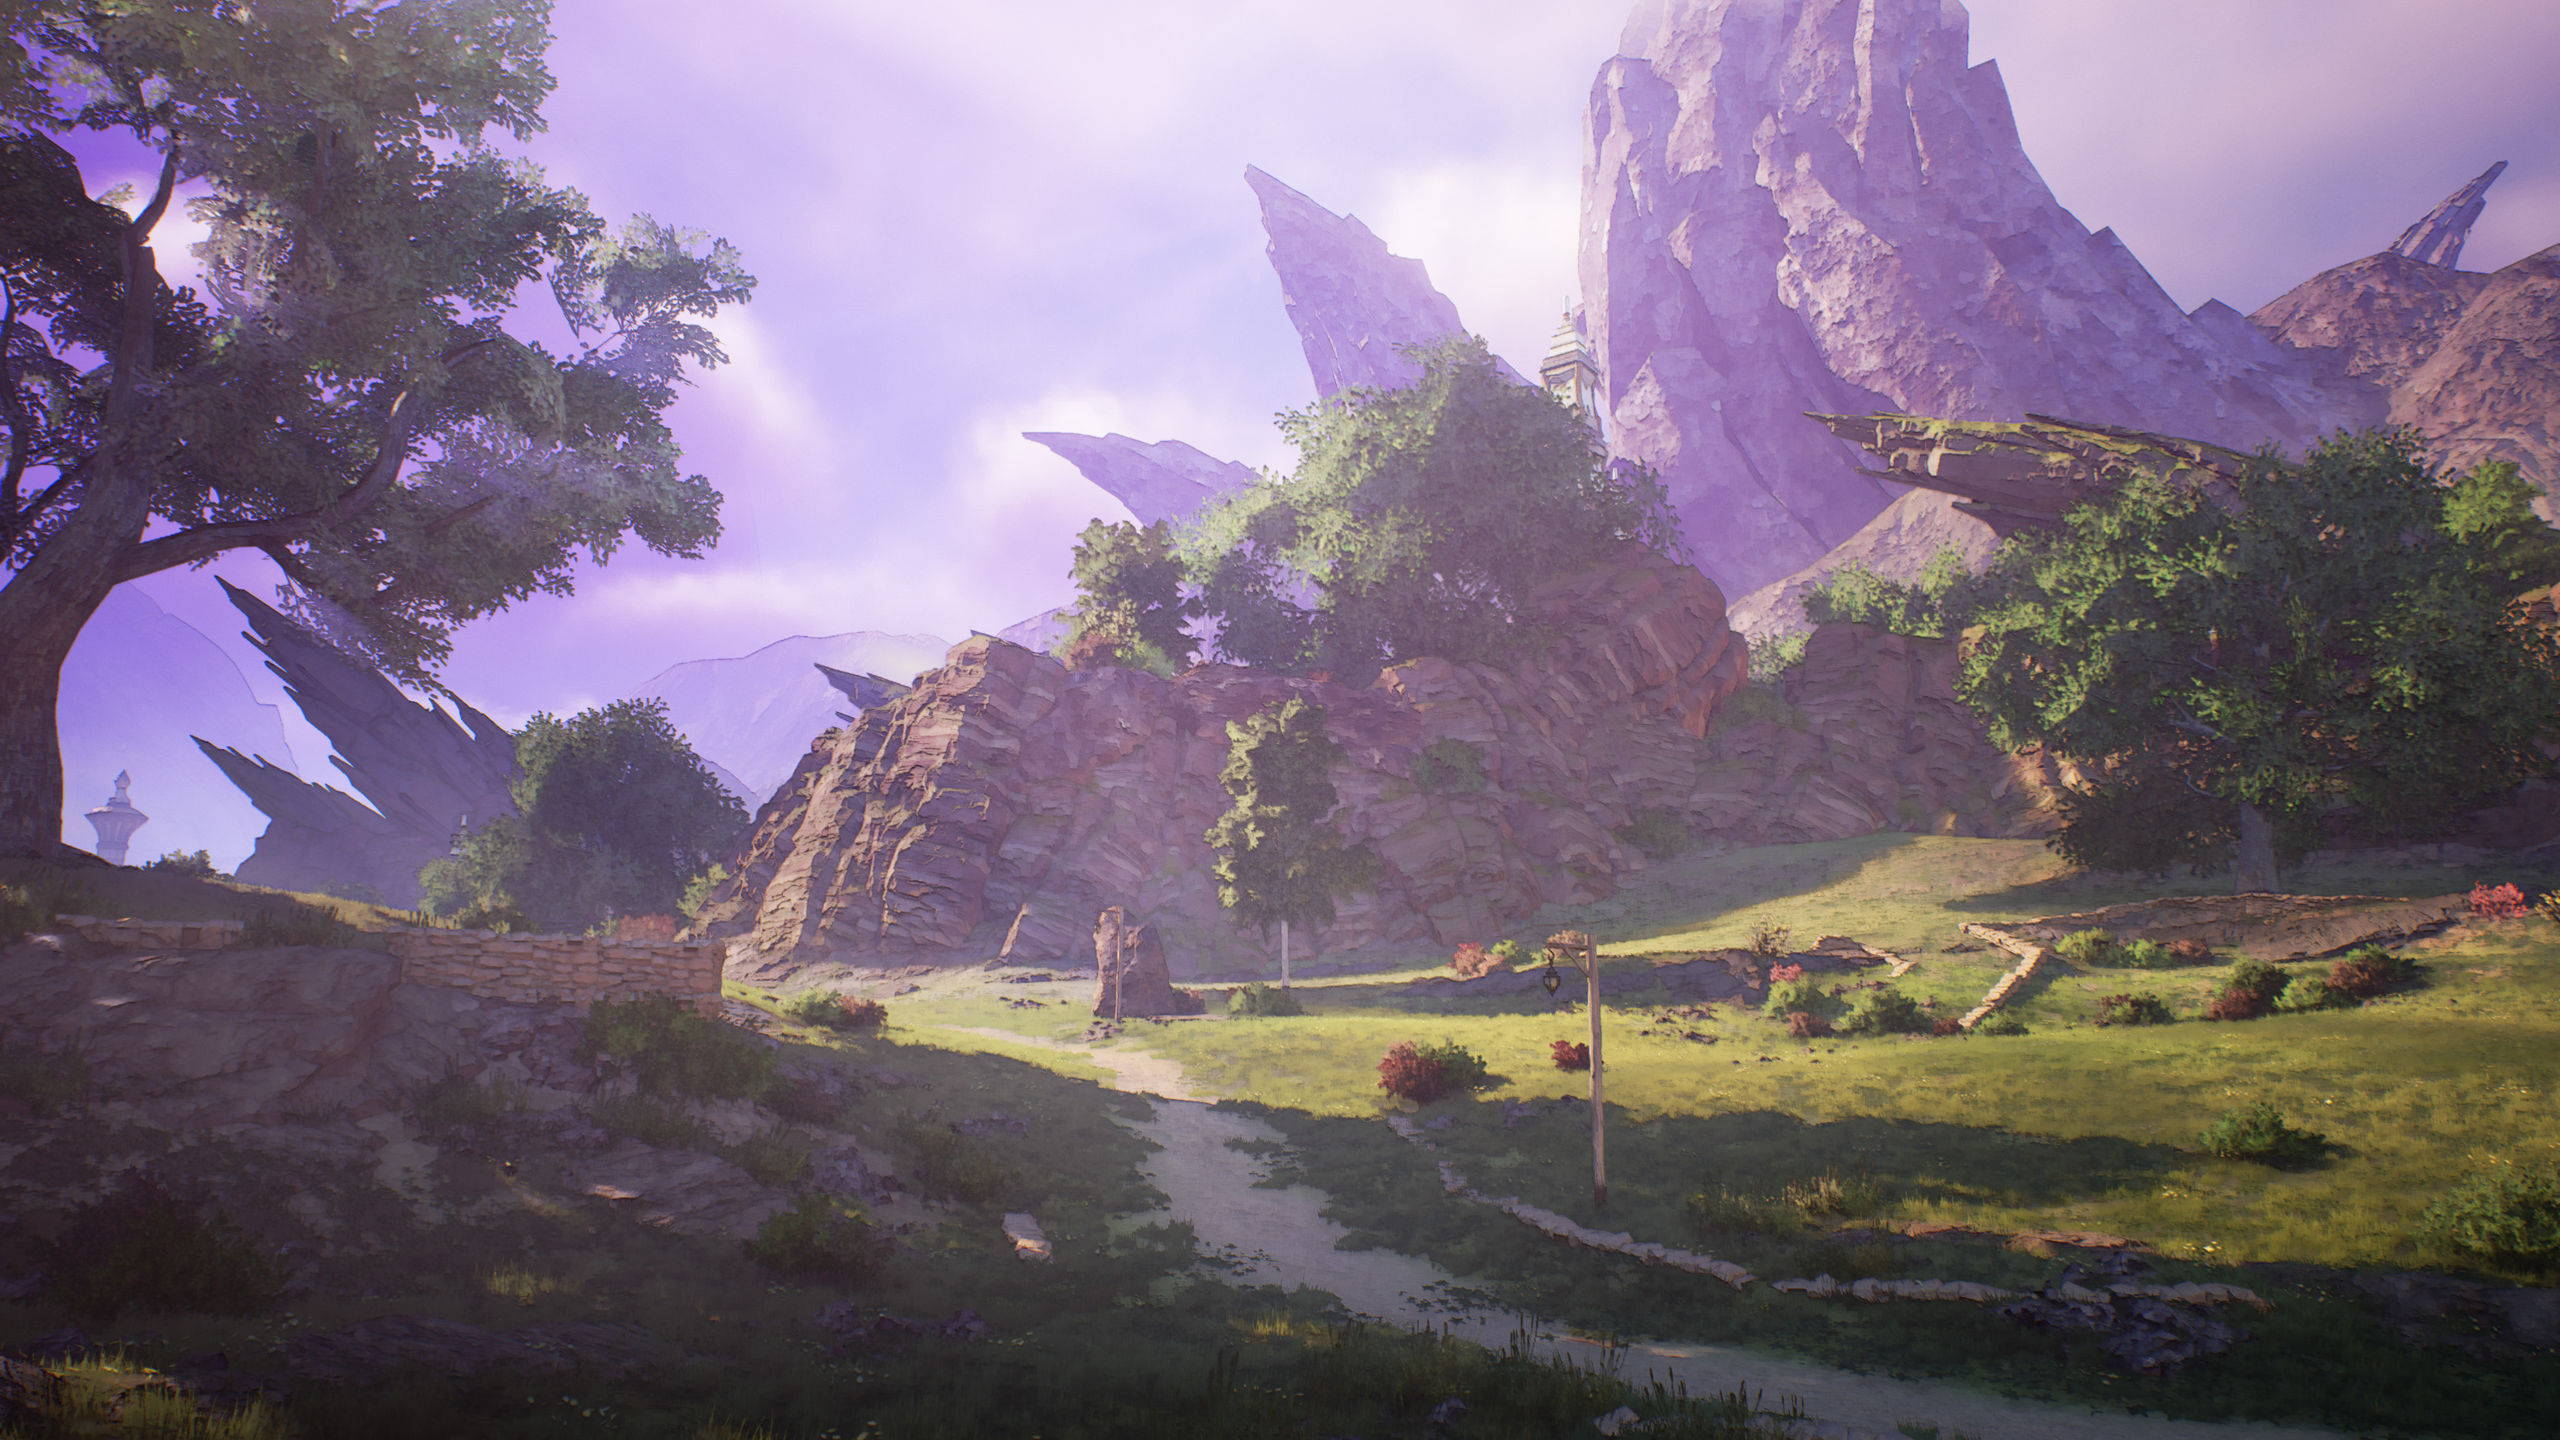 A road leads up to some jutting mountain peaks in Tales of Arise.